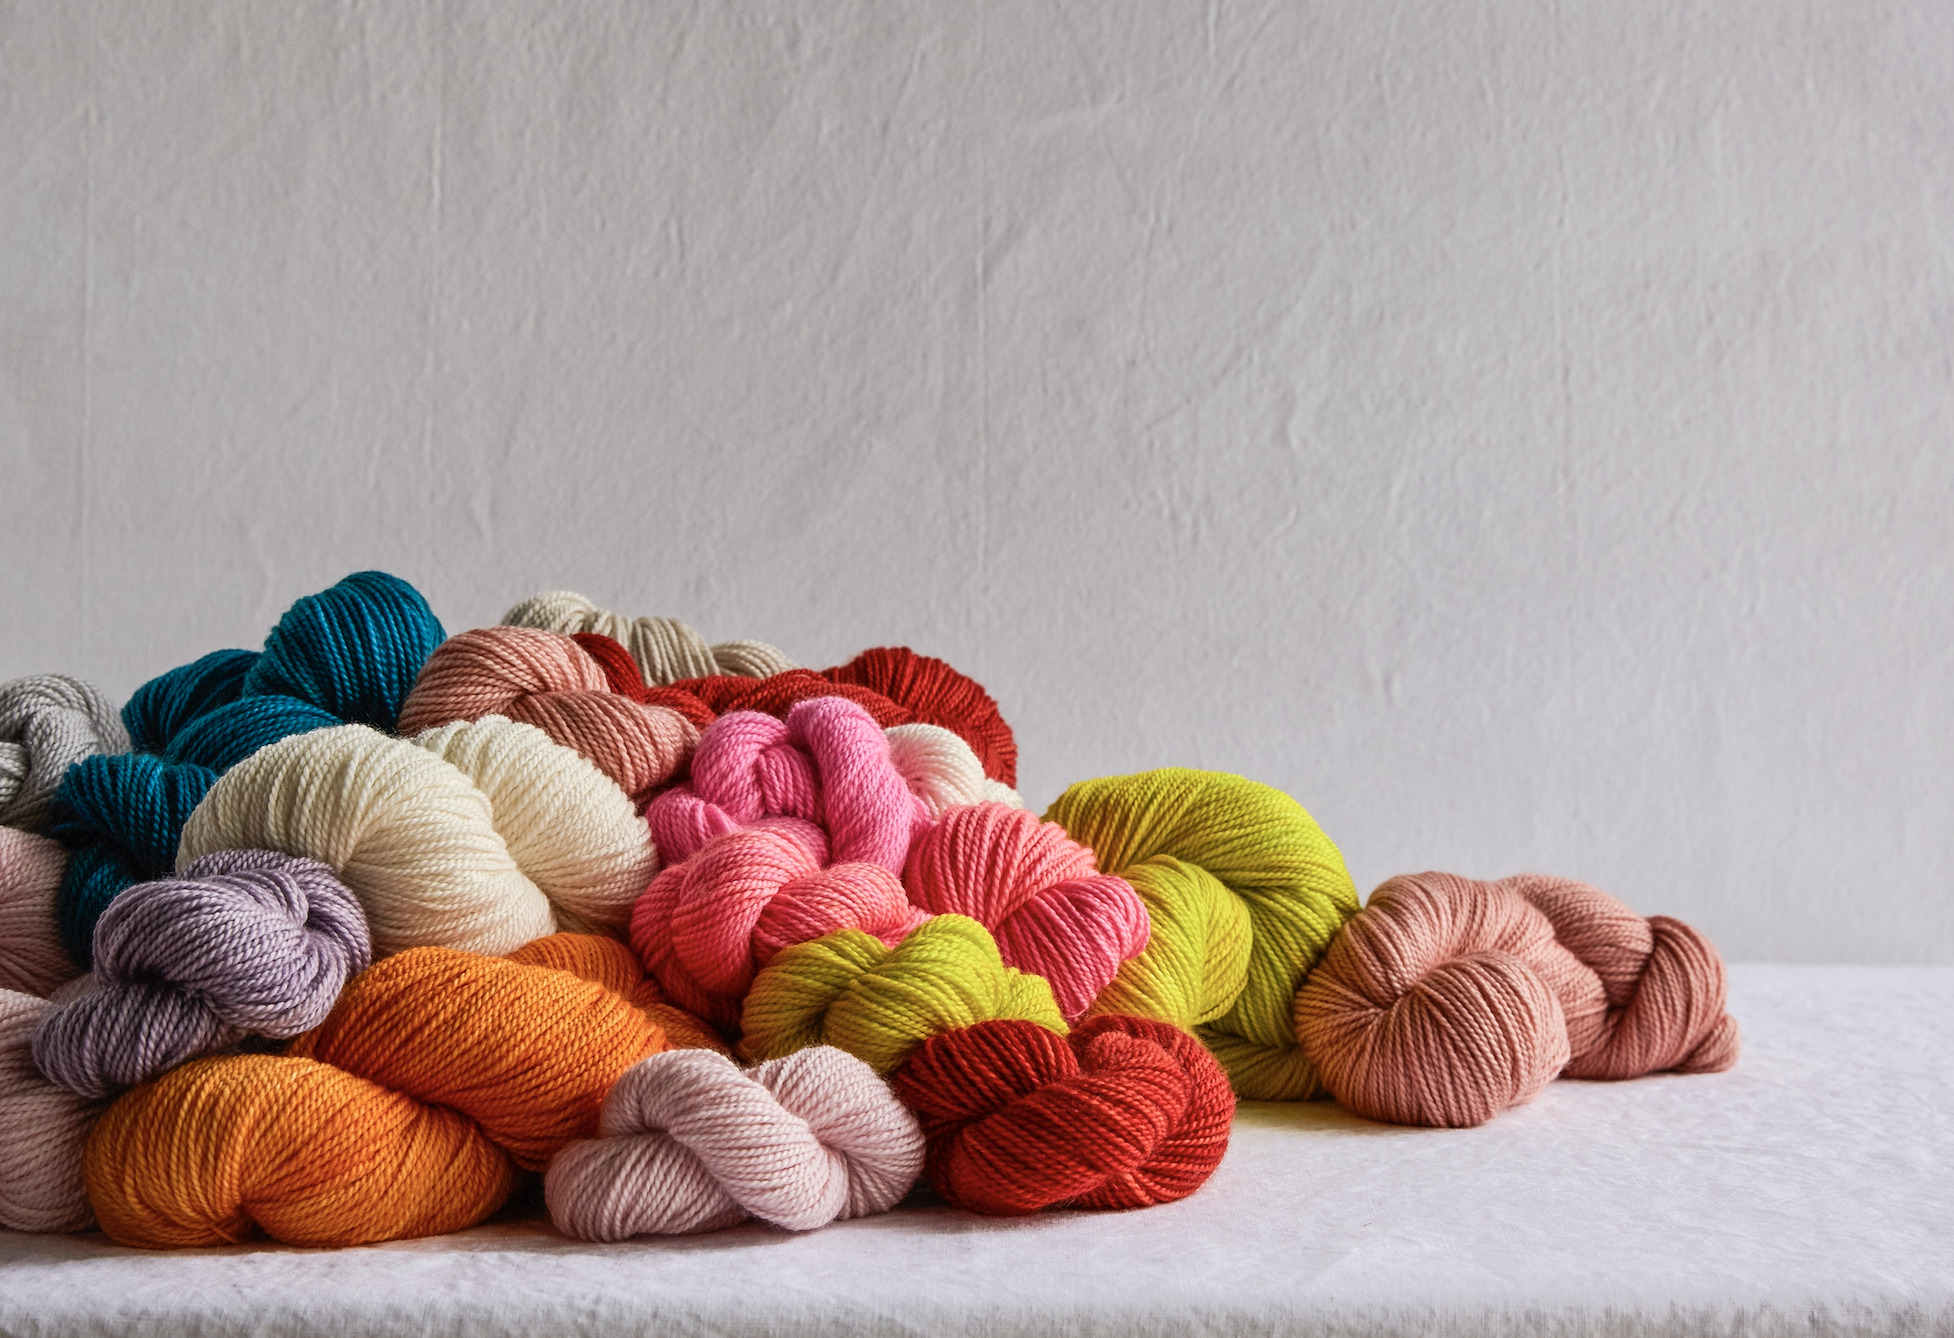 How to Find (or Substitute) Discontinued Yarn